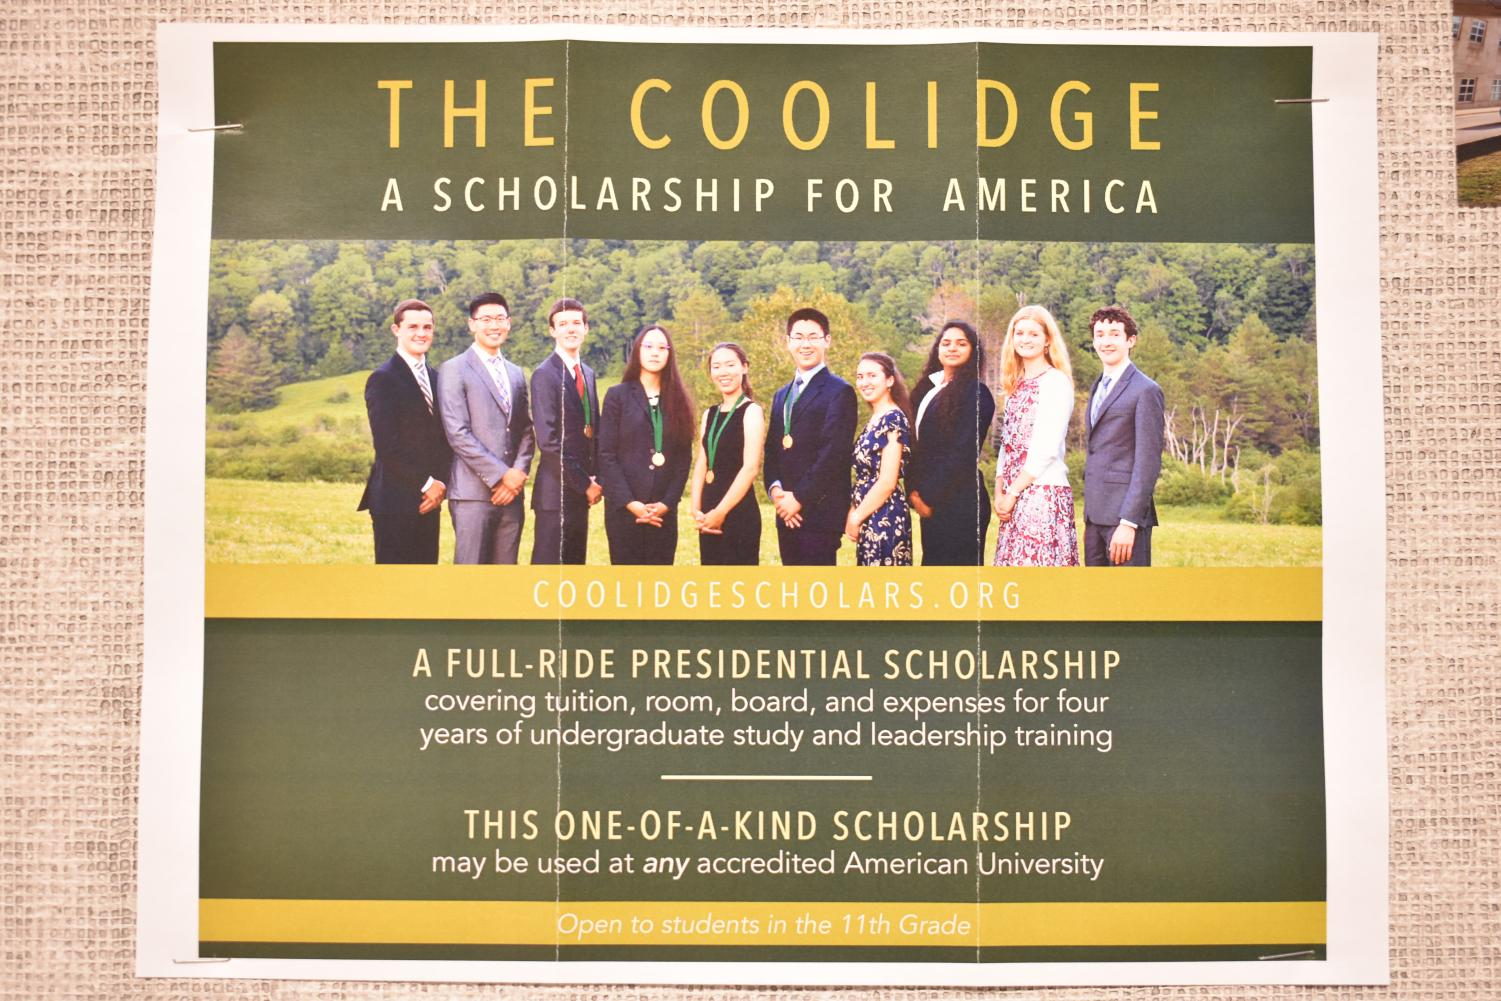 A flier advertising the Coolidge scholarship, picturing previous recipients